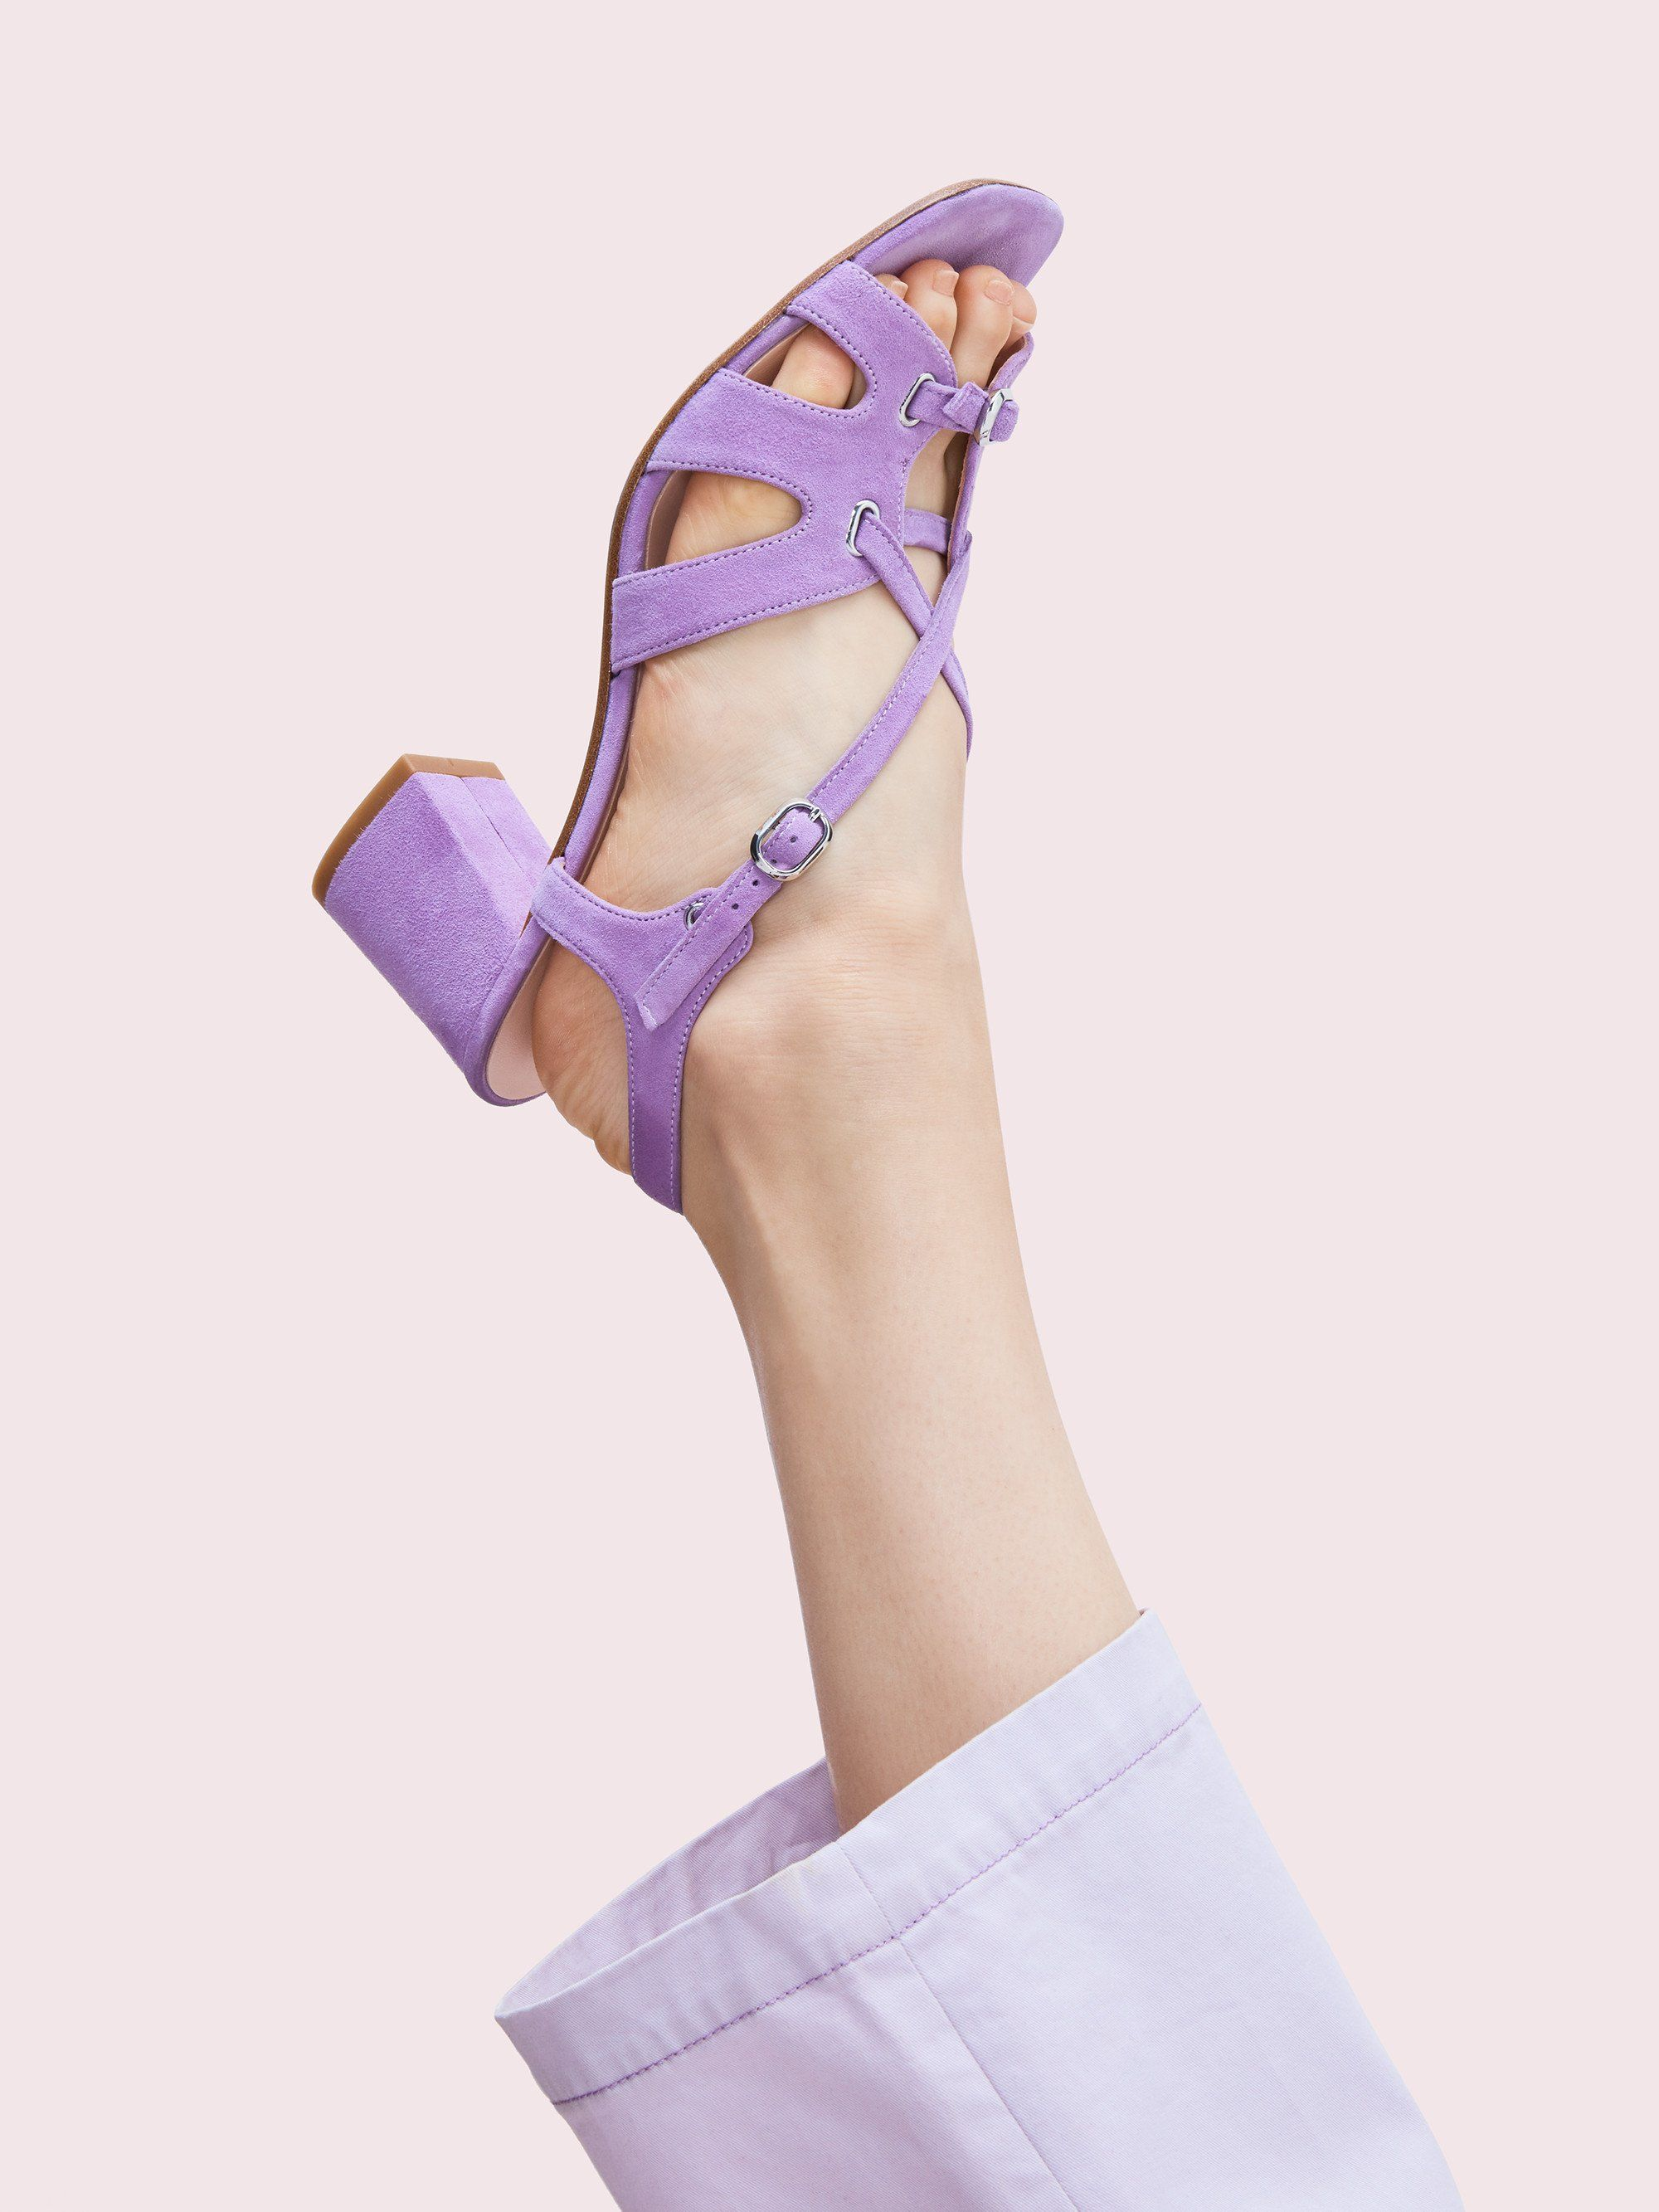 Strappy sandals, Chunky heels, Sandals